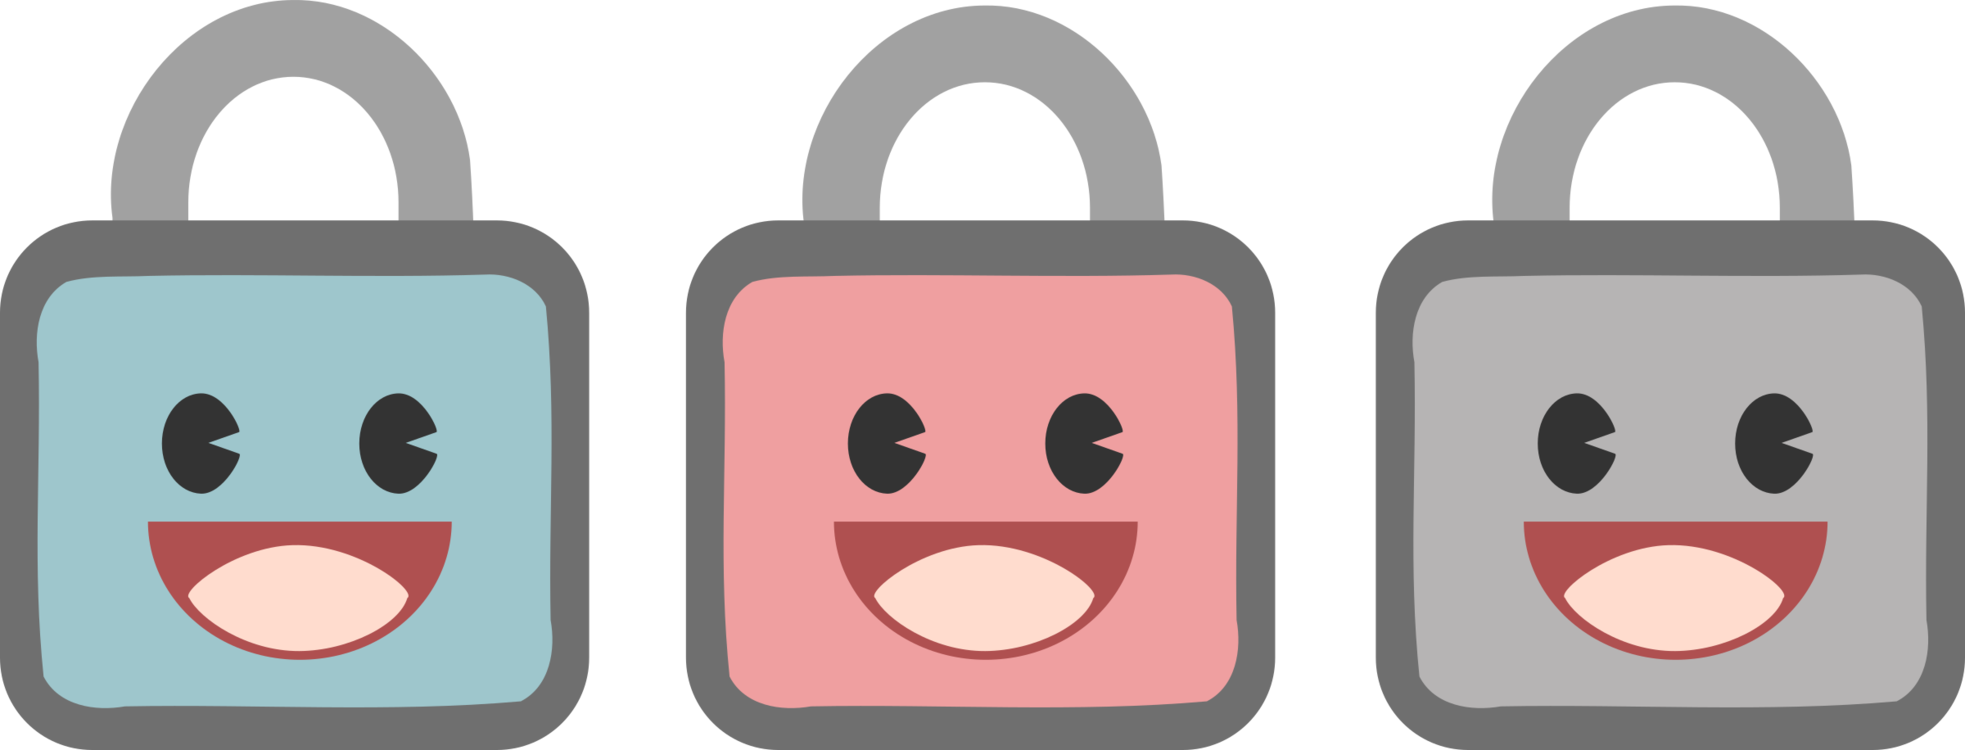 Transparent padlock cartoon. Computer icons door lock